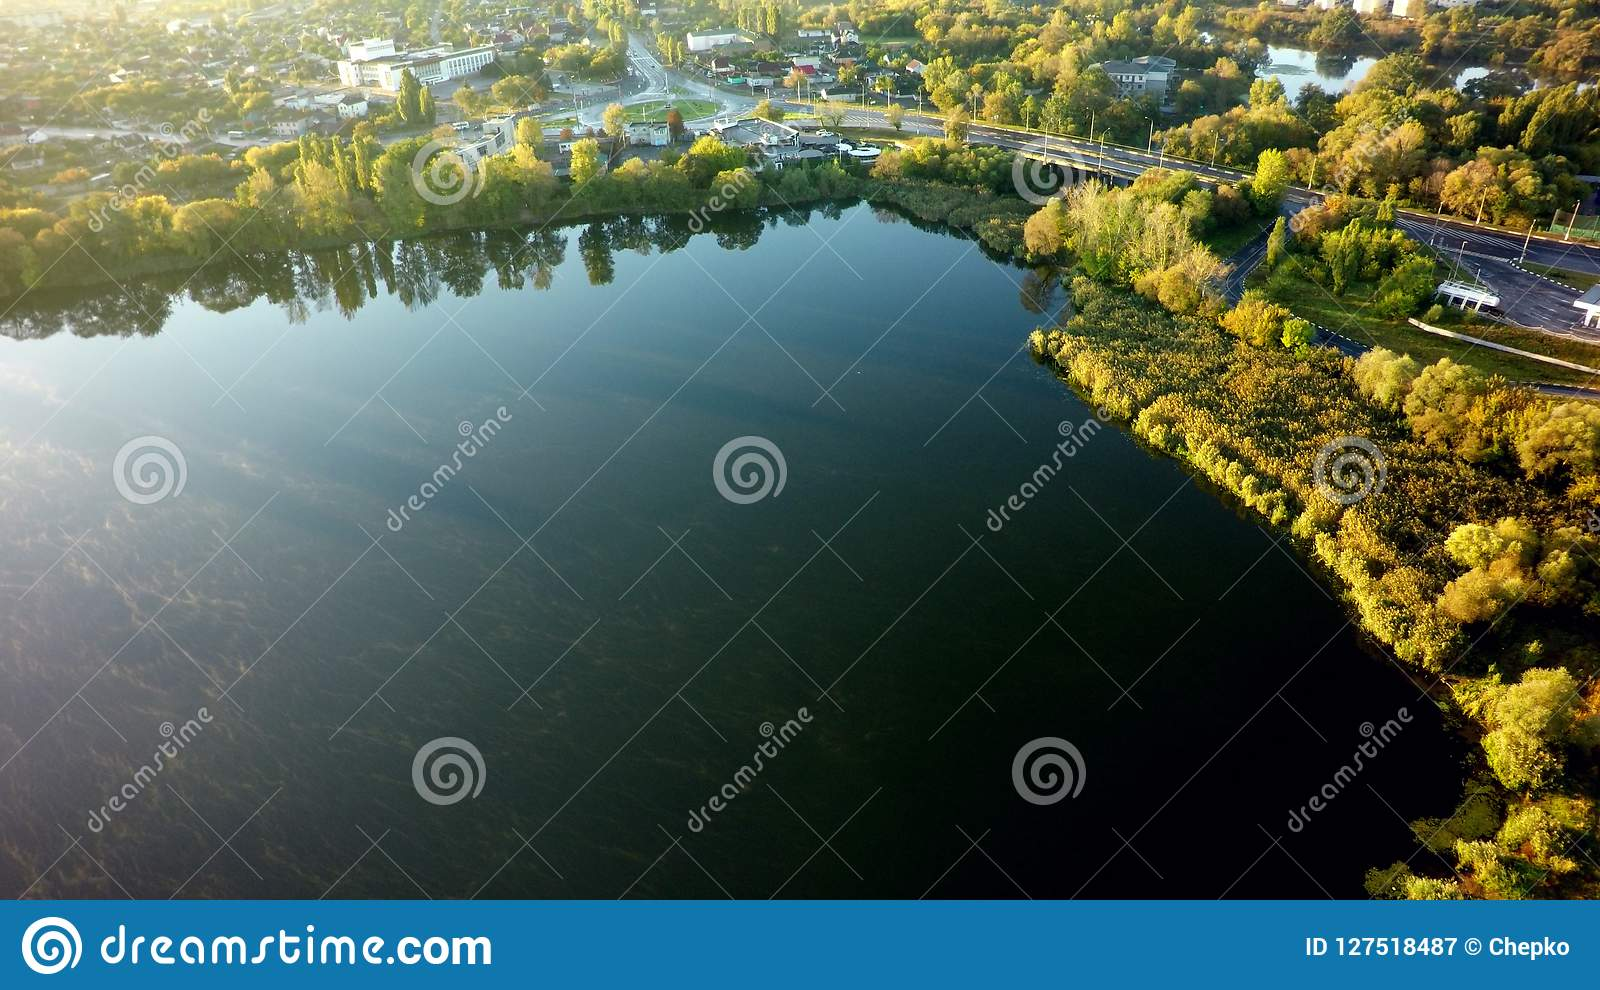 Aerial view on the lake and tree in city